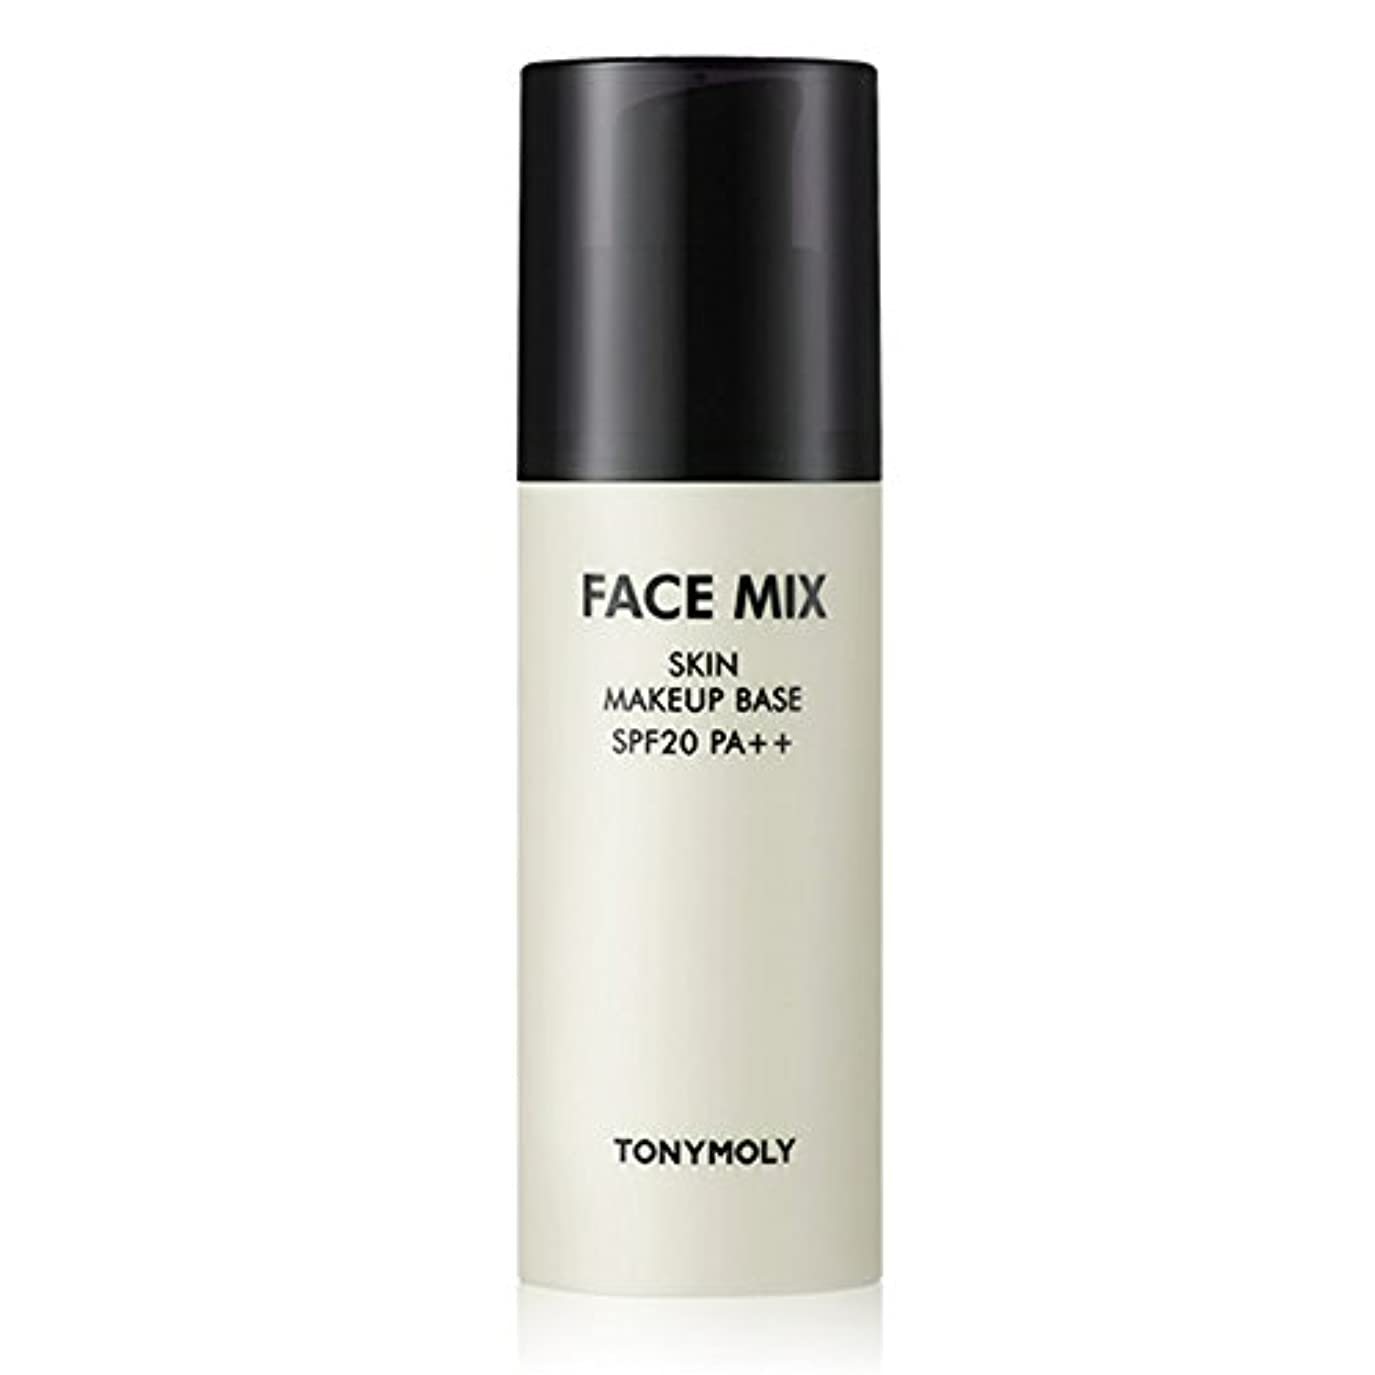 変色する保守的製品TONYMOLY FACE MIX SKIN MAKEUP BASE 02 MIX LAVENDER SPF20 PA+++ 30g